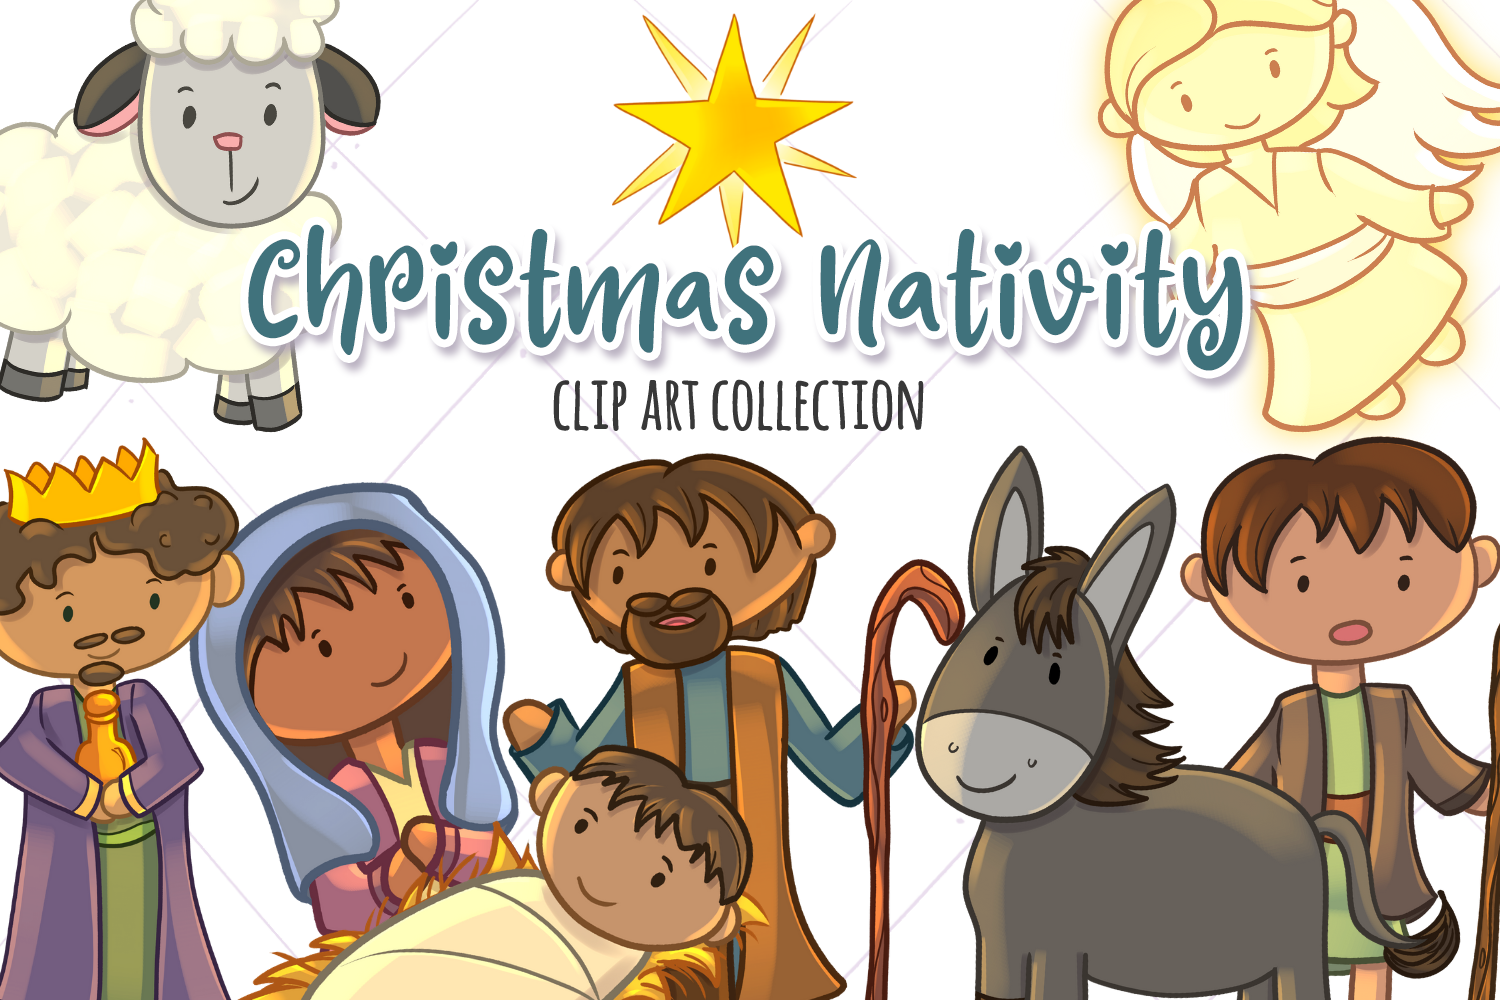 Download Free Christmas Nativity Clip Art Collection Graphic By for Cricut Explore, Silhouette and other cutting machines.